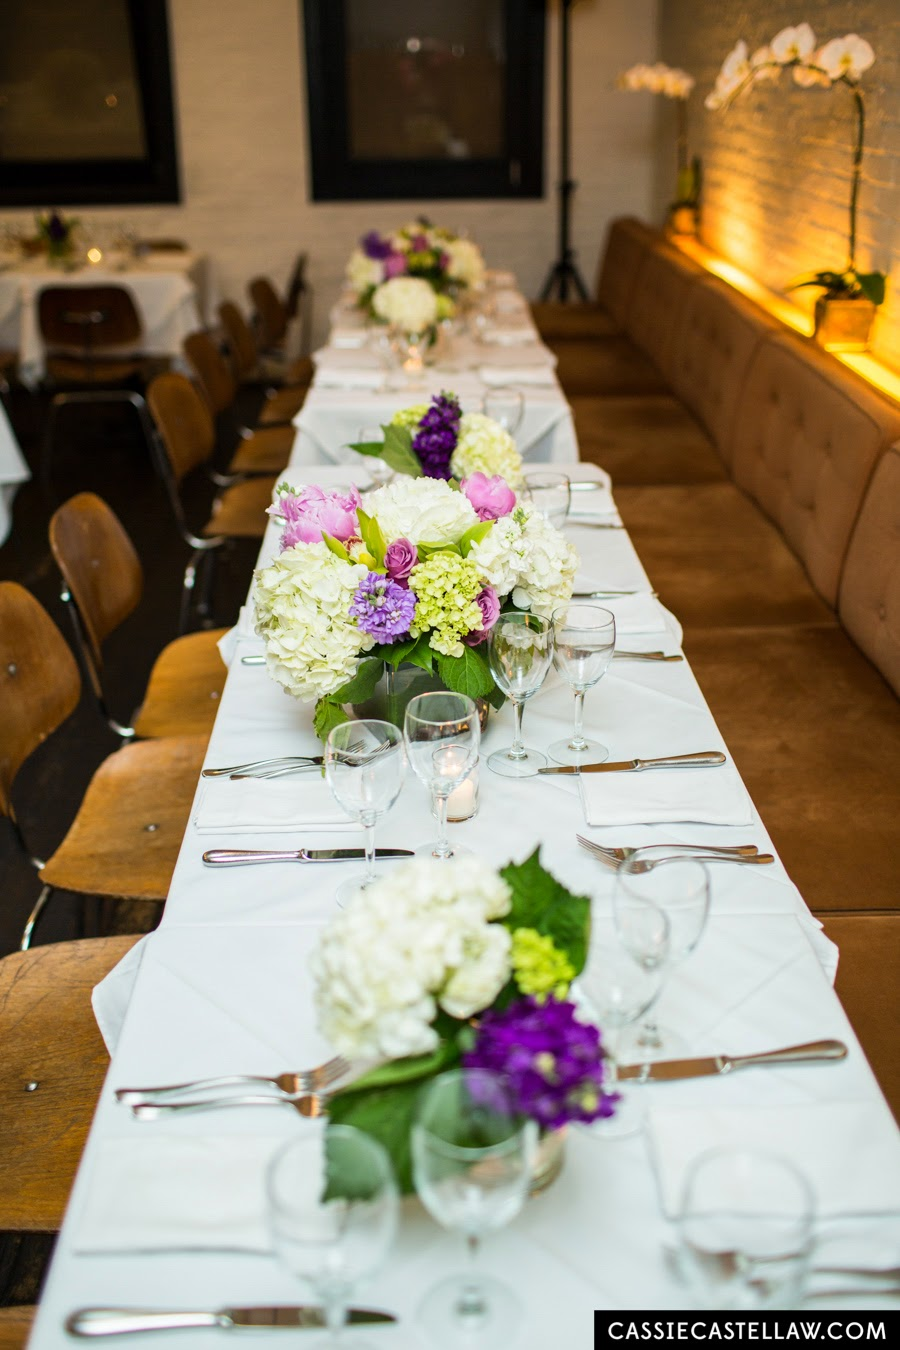 Romantic floral centerpieces on long white table: White and green hydrangea, pink roses, pink peony, green orchid, delicate purple flowers. NYC Lifestyle wedding photography by Cassie Castellaw. www.cassiecastellaw.com